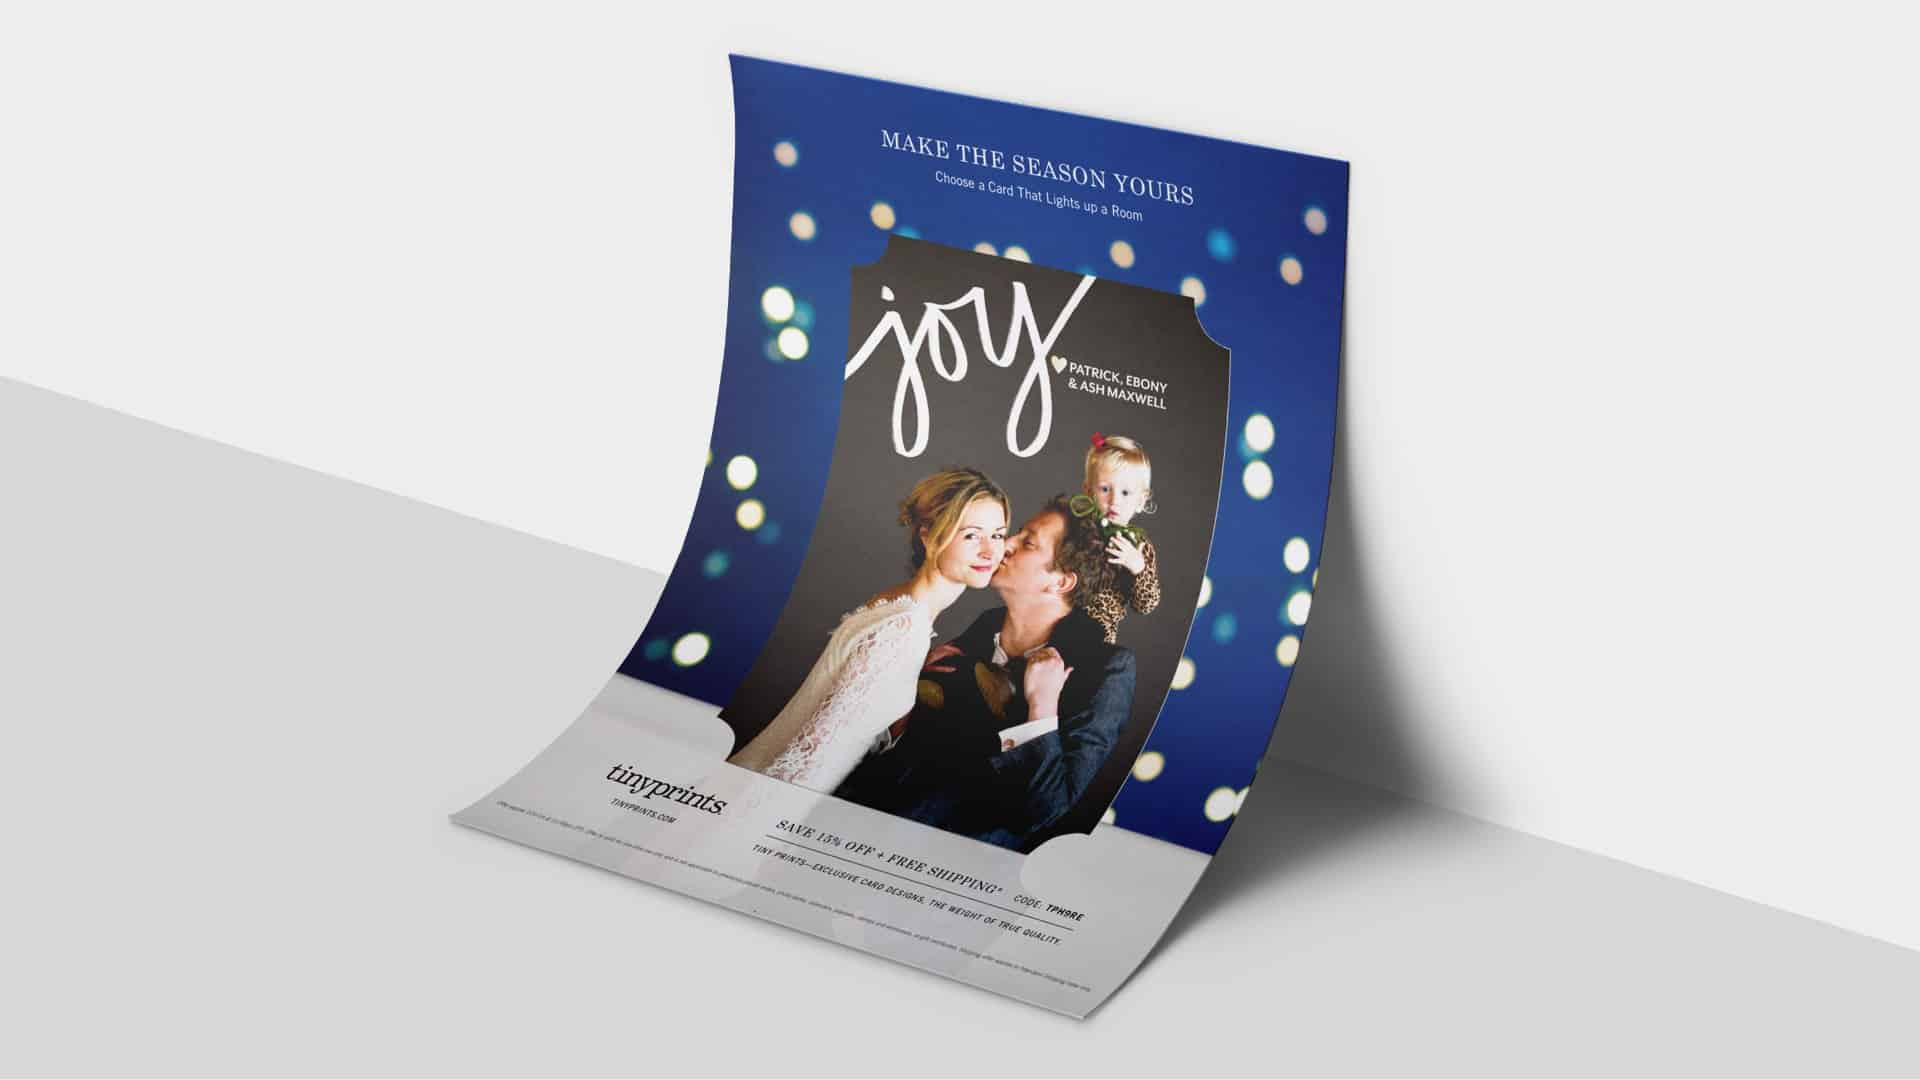 Tiny Prints Make The Season Yours Flyer 2 - Creative Banding Agency - Citizen Best